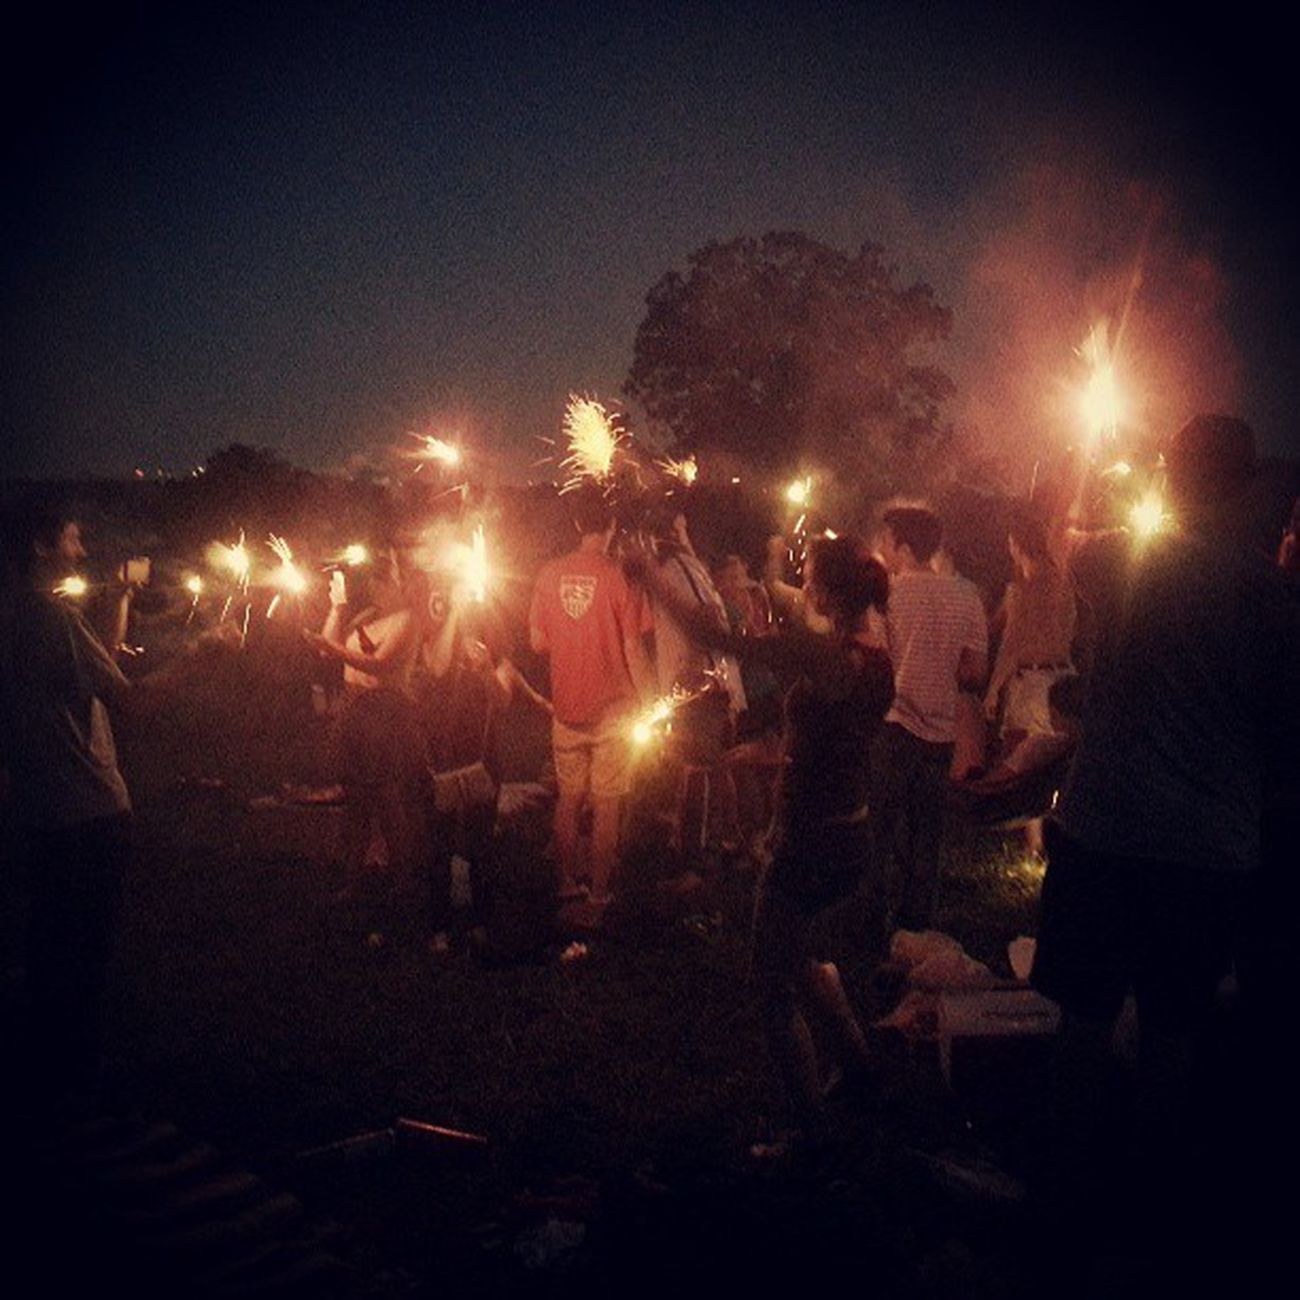 Sparklers have shown up Philadelphia Belmontplateau Fairmountpark